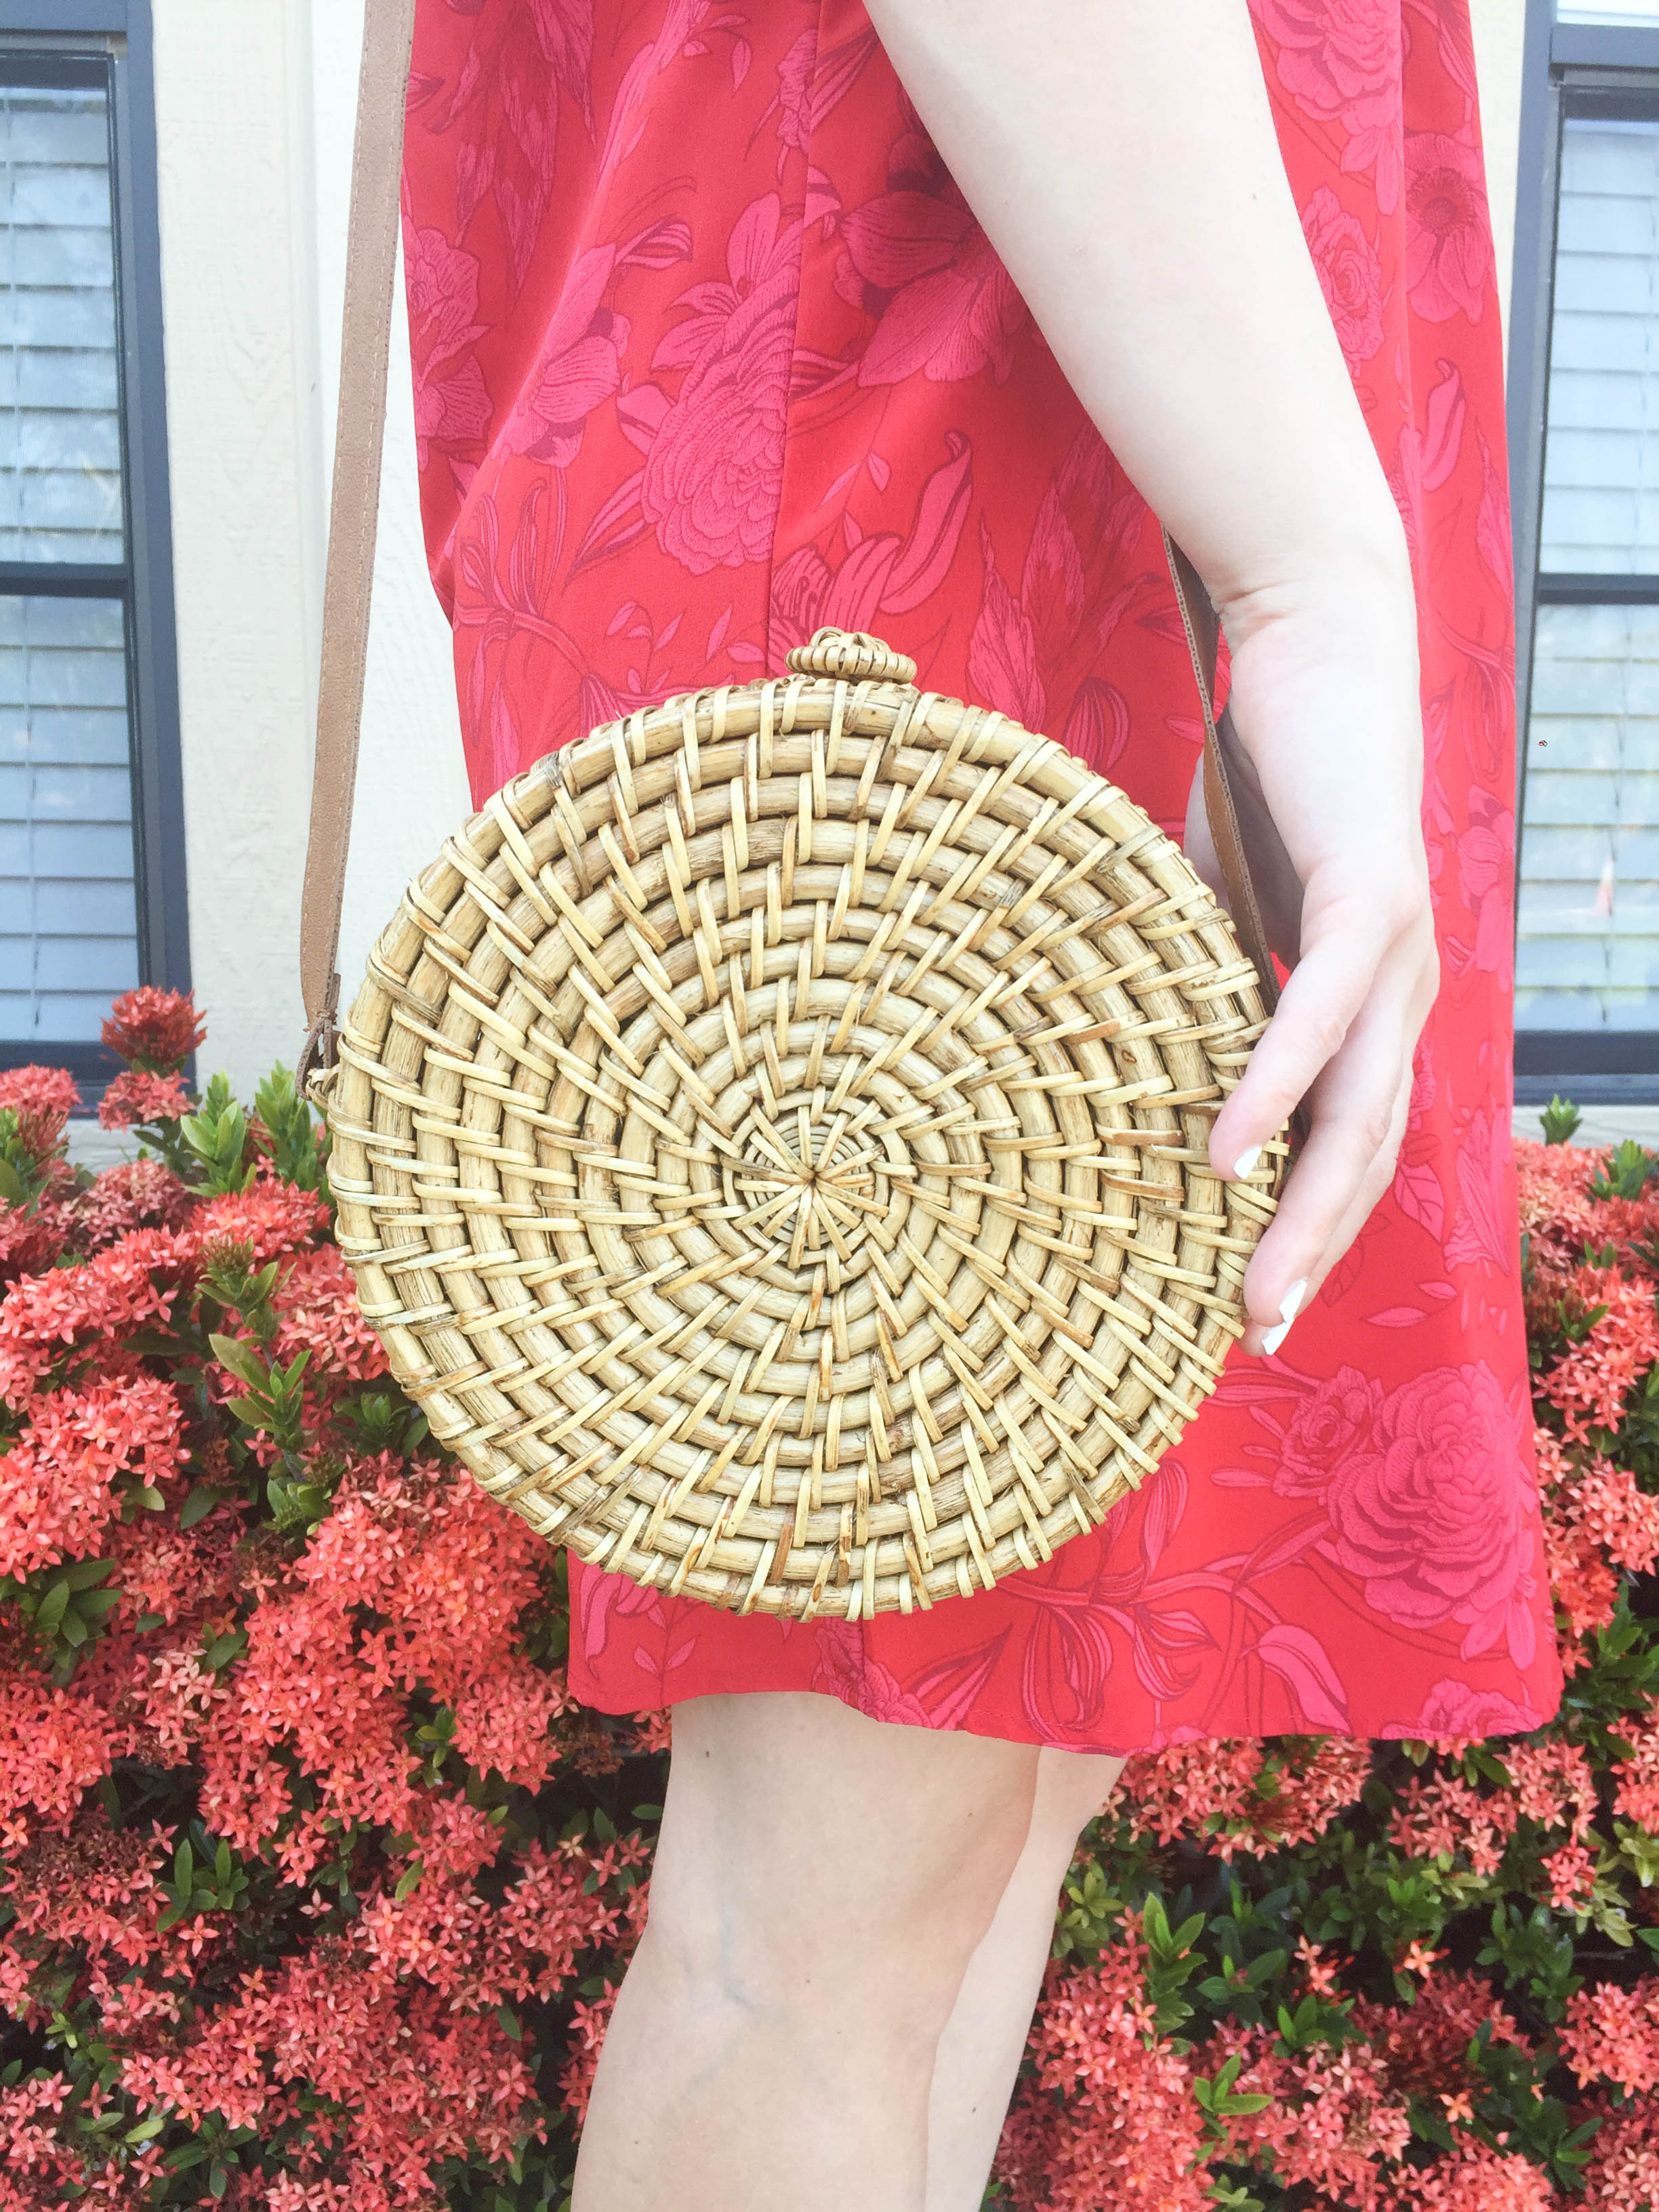 Round Straw Bag on Livin' Life with Style